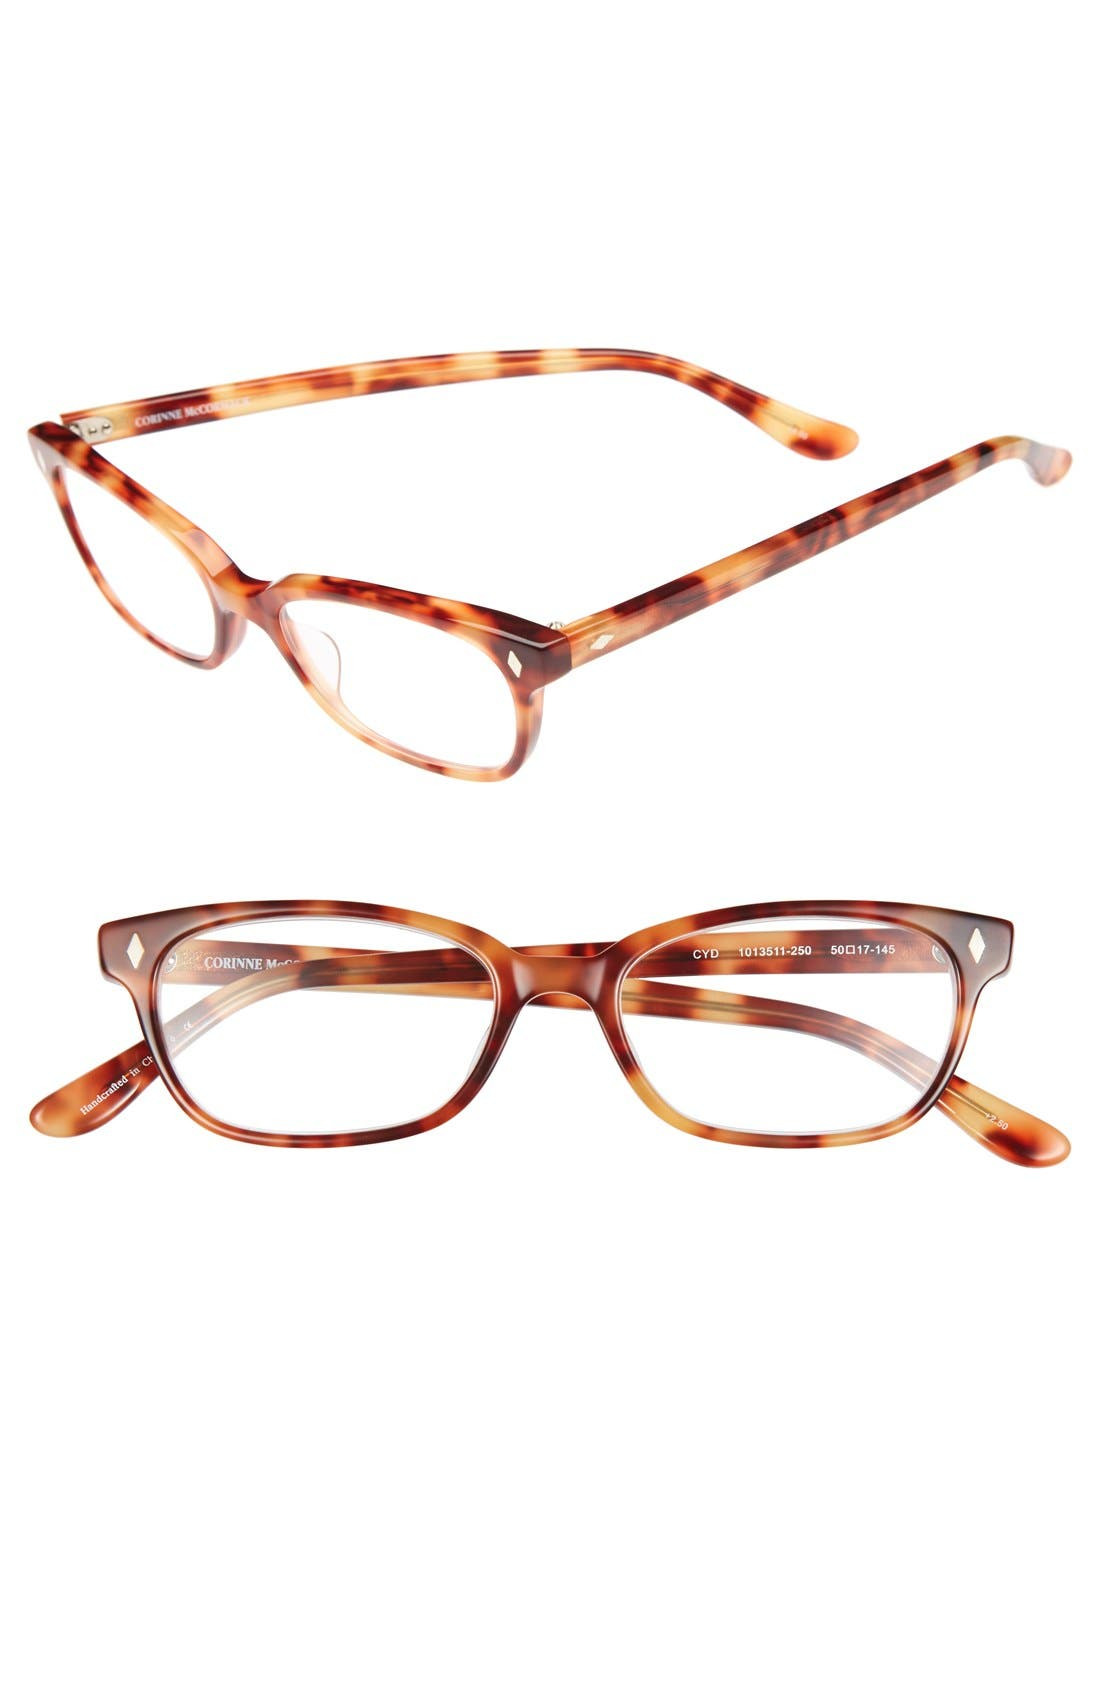 Alternate Image 1 Selected - Corinne McCormack 'Cyd' 52mm Reading Glasses (2 for $88)